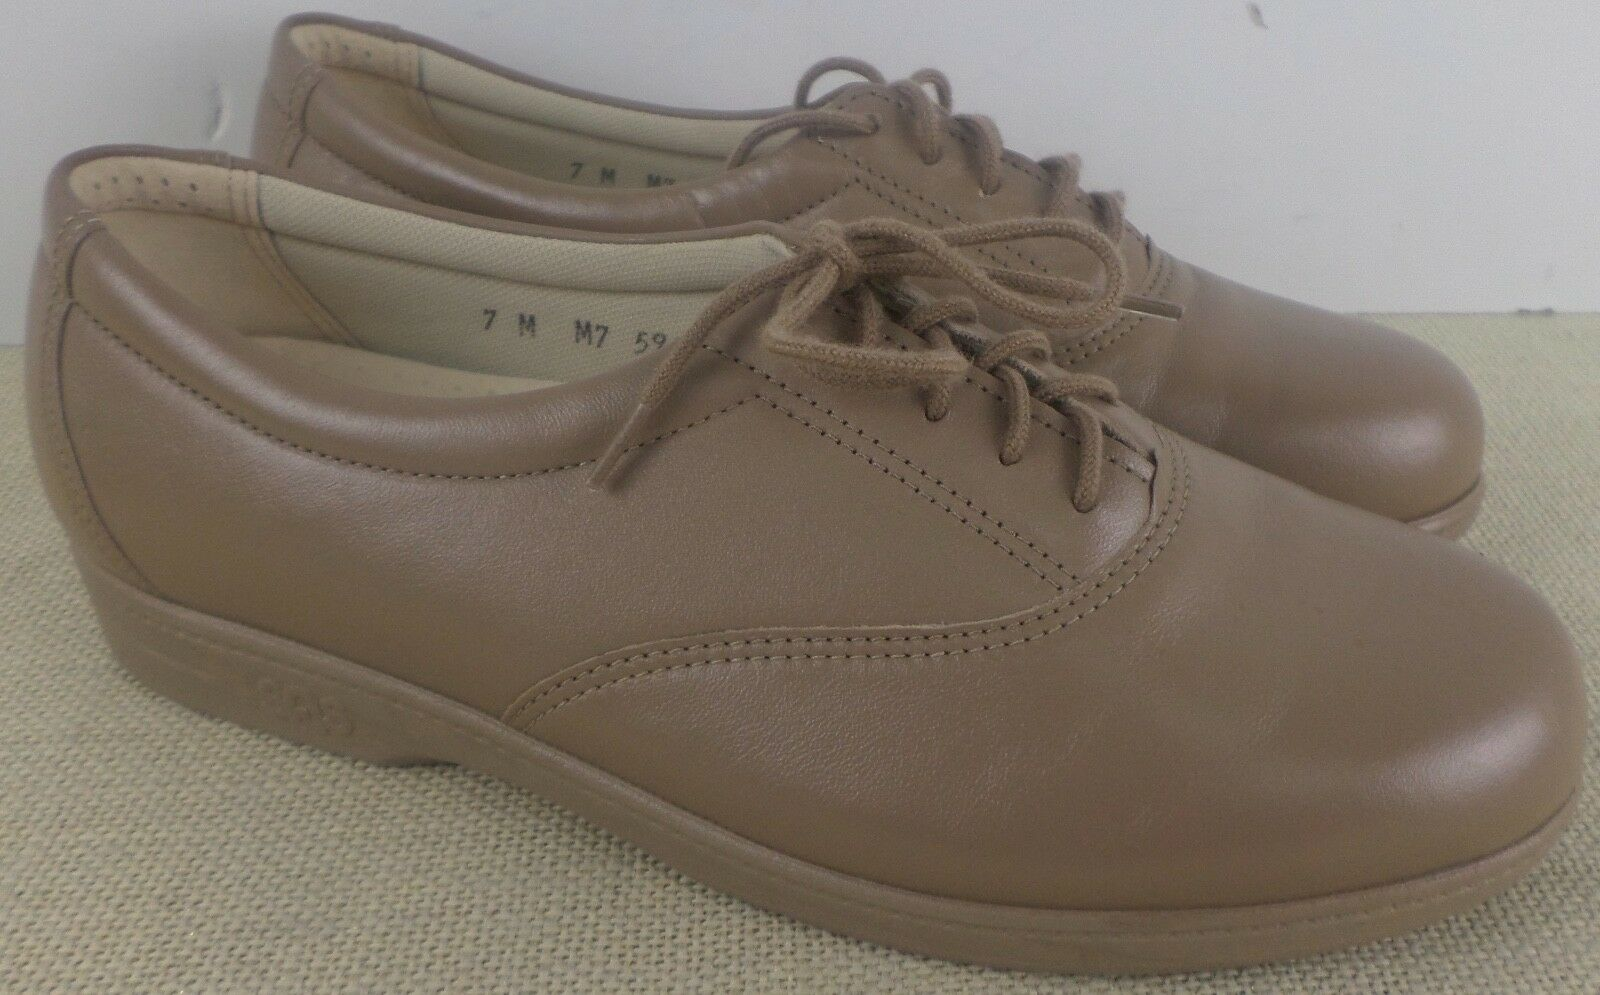 SAS WHISPER MOCHA WOMEN'S BEIGE LEATHER CASUAL Schuhe SIZE 5M NEU MADE IN USA